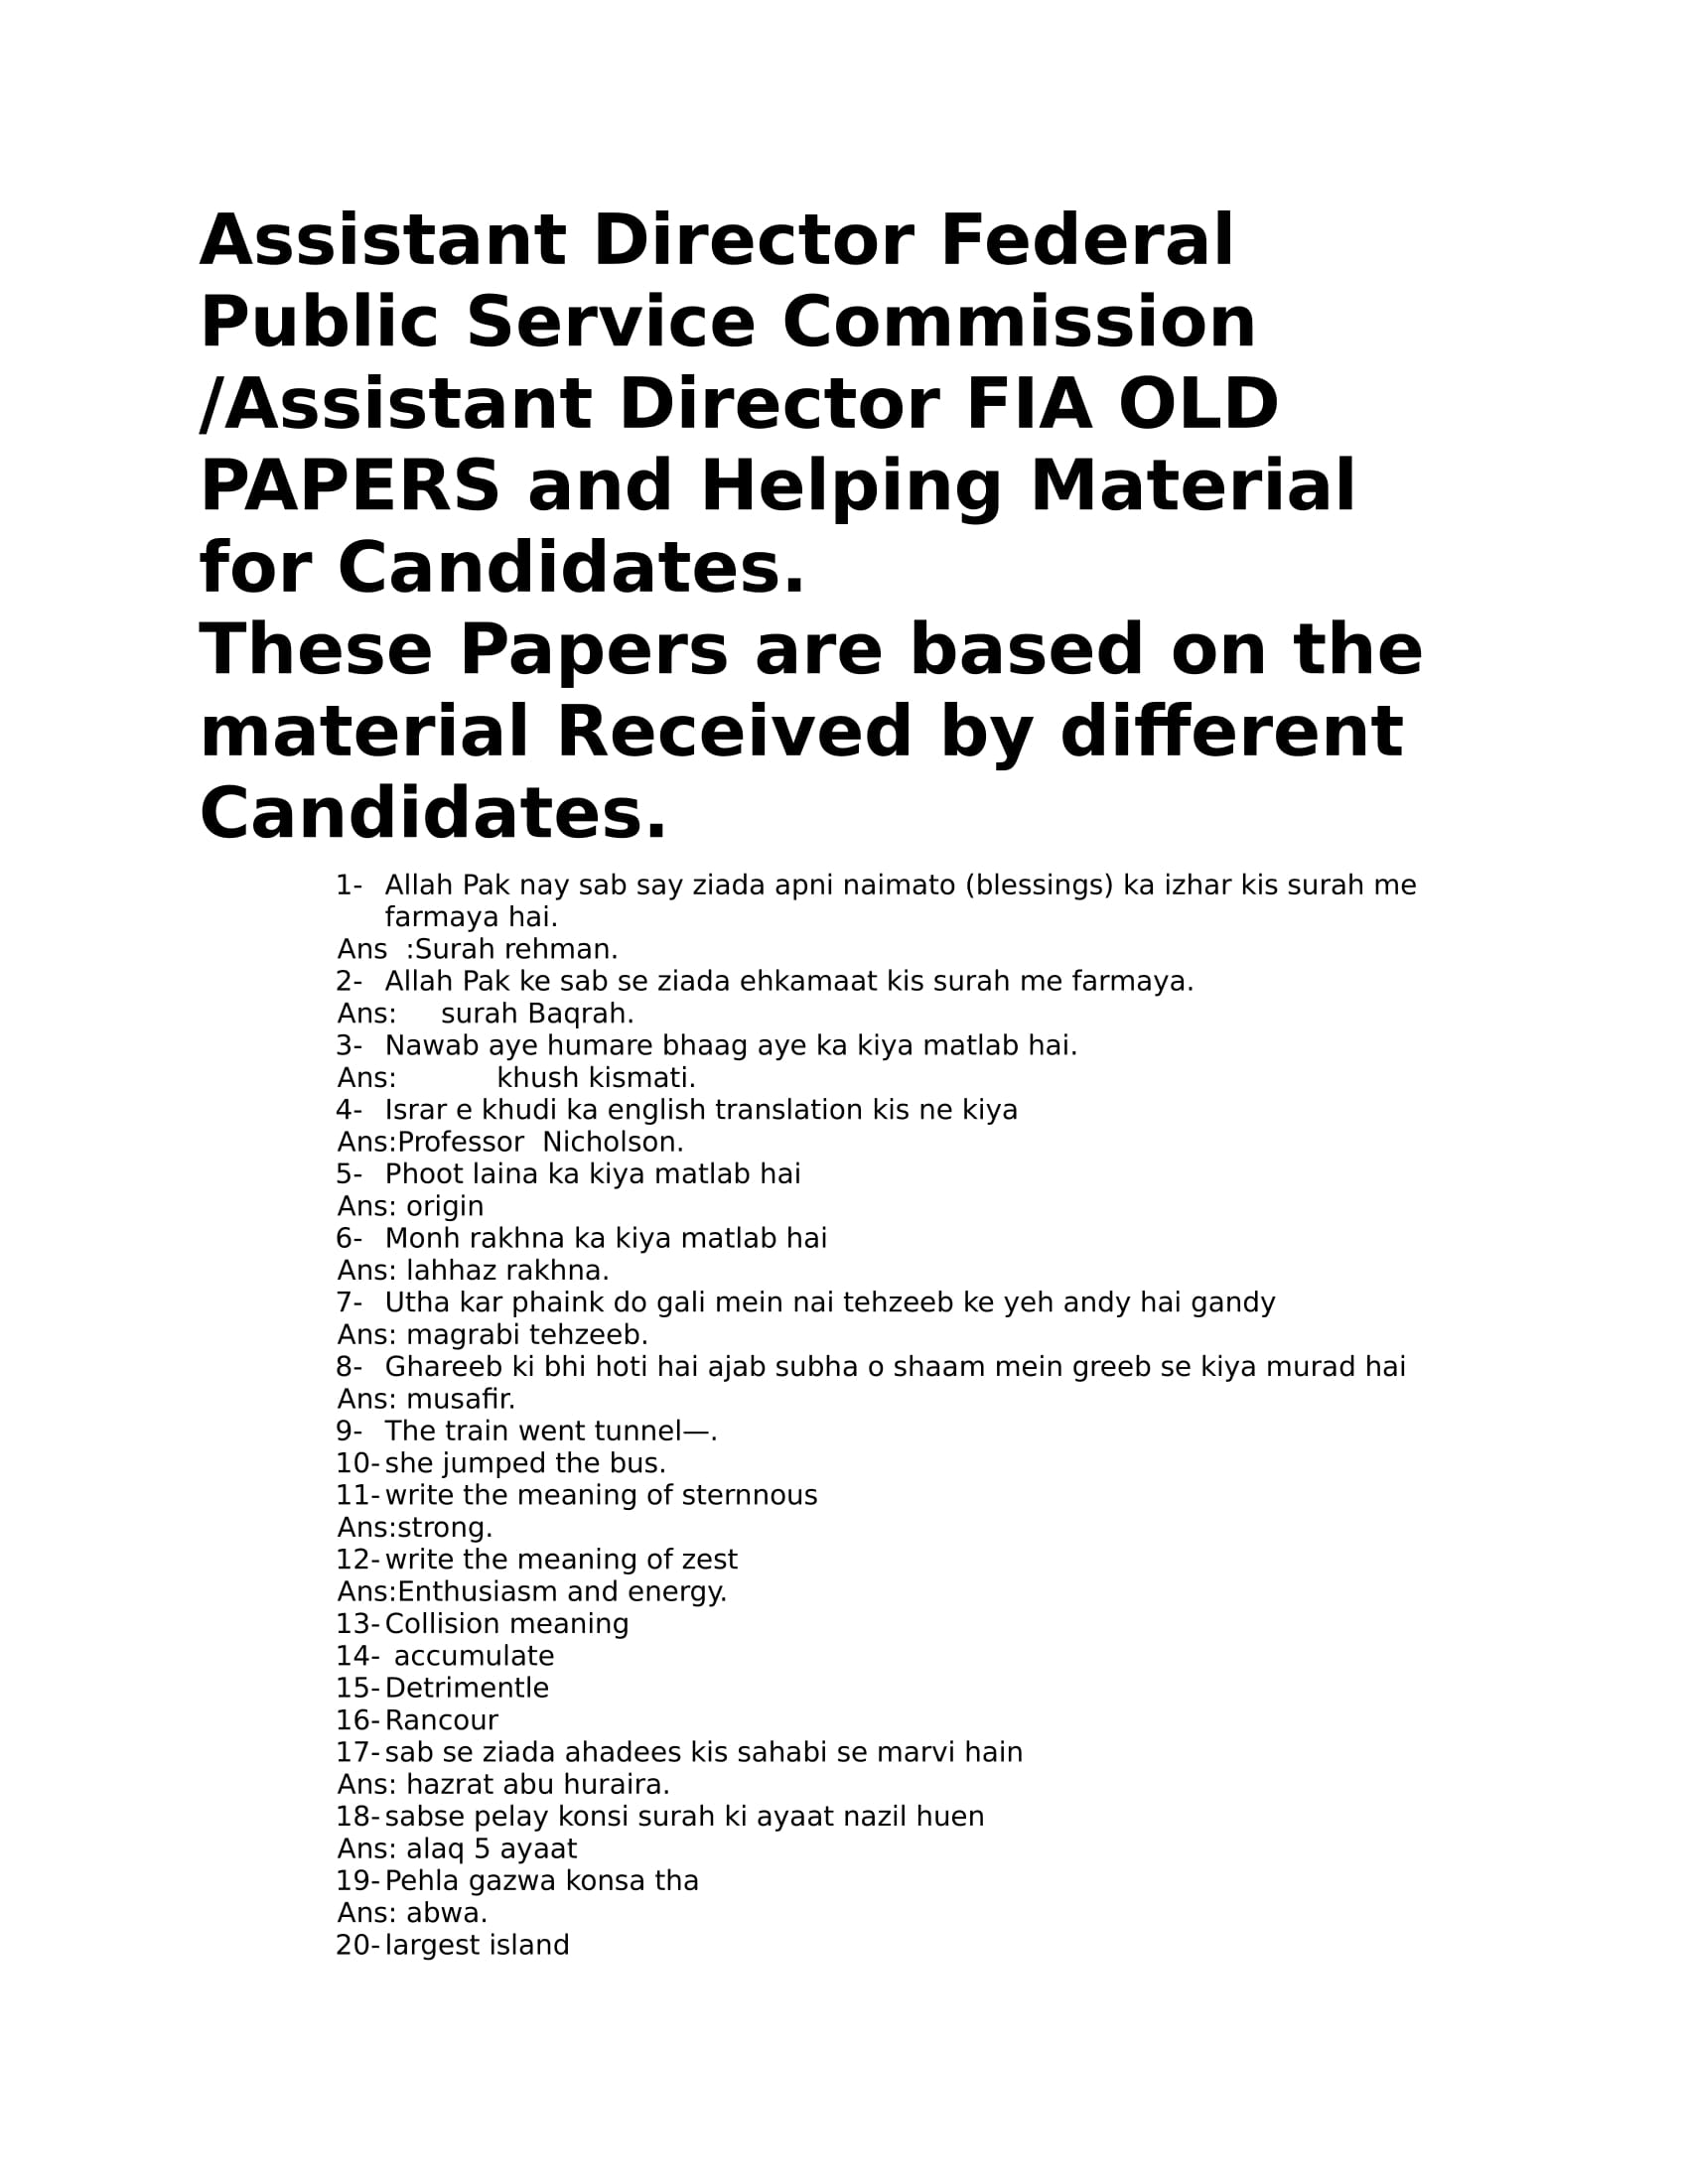 FIA Old Papers for Assistant Director / Inspector Federal